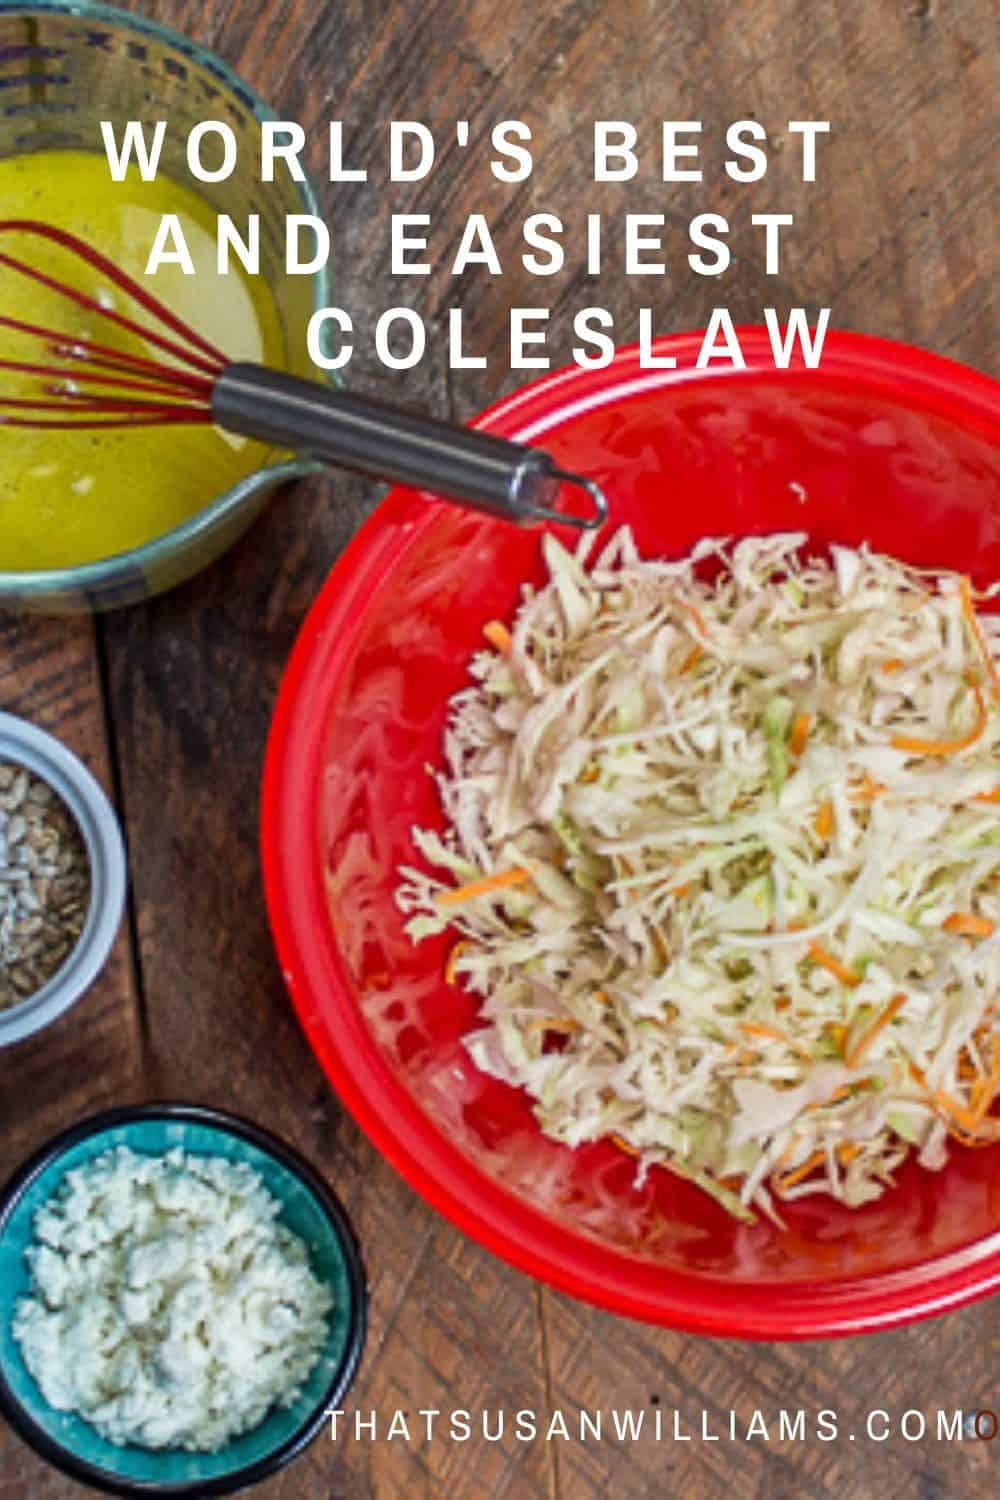 World's Best and Easiest Coleslaw with a Homemade Vinaigrette